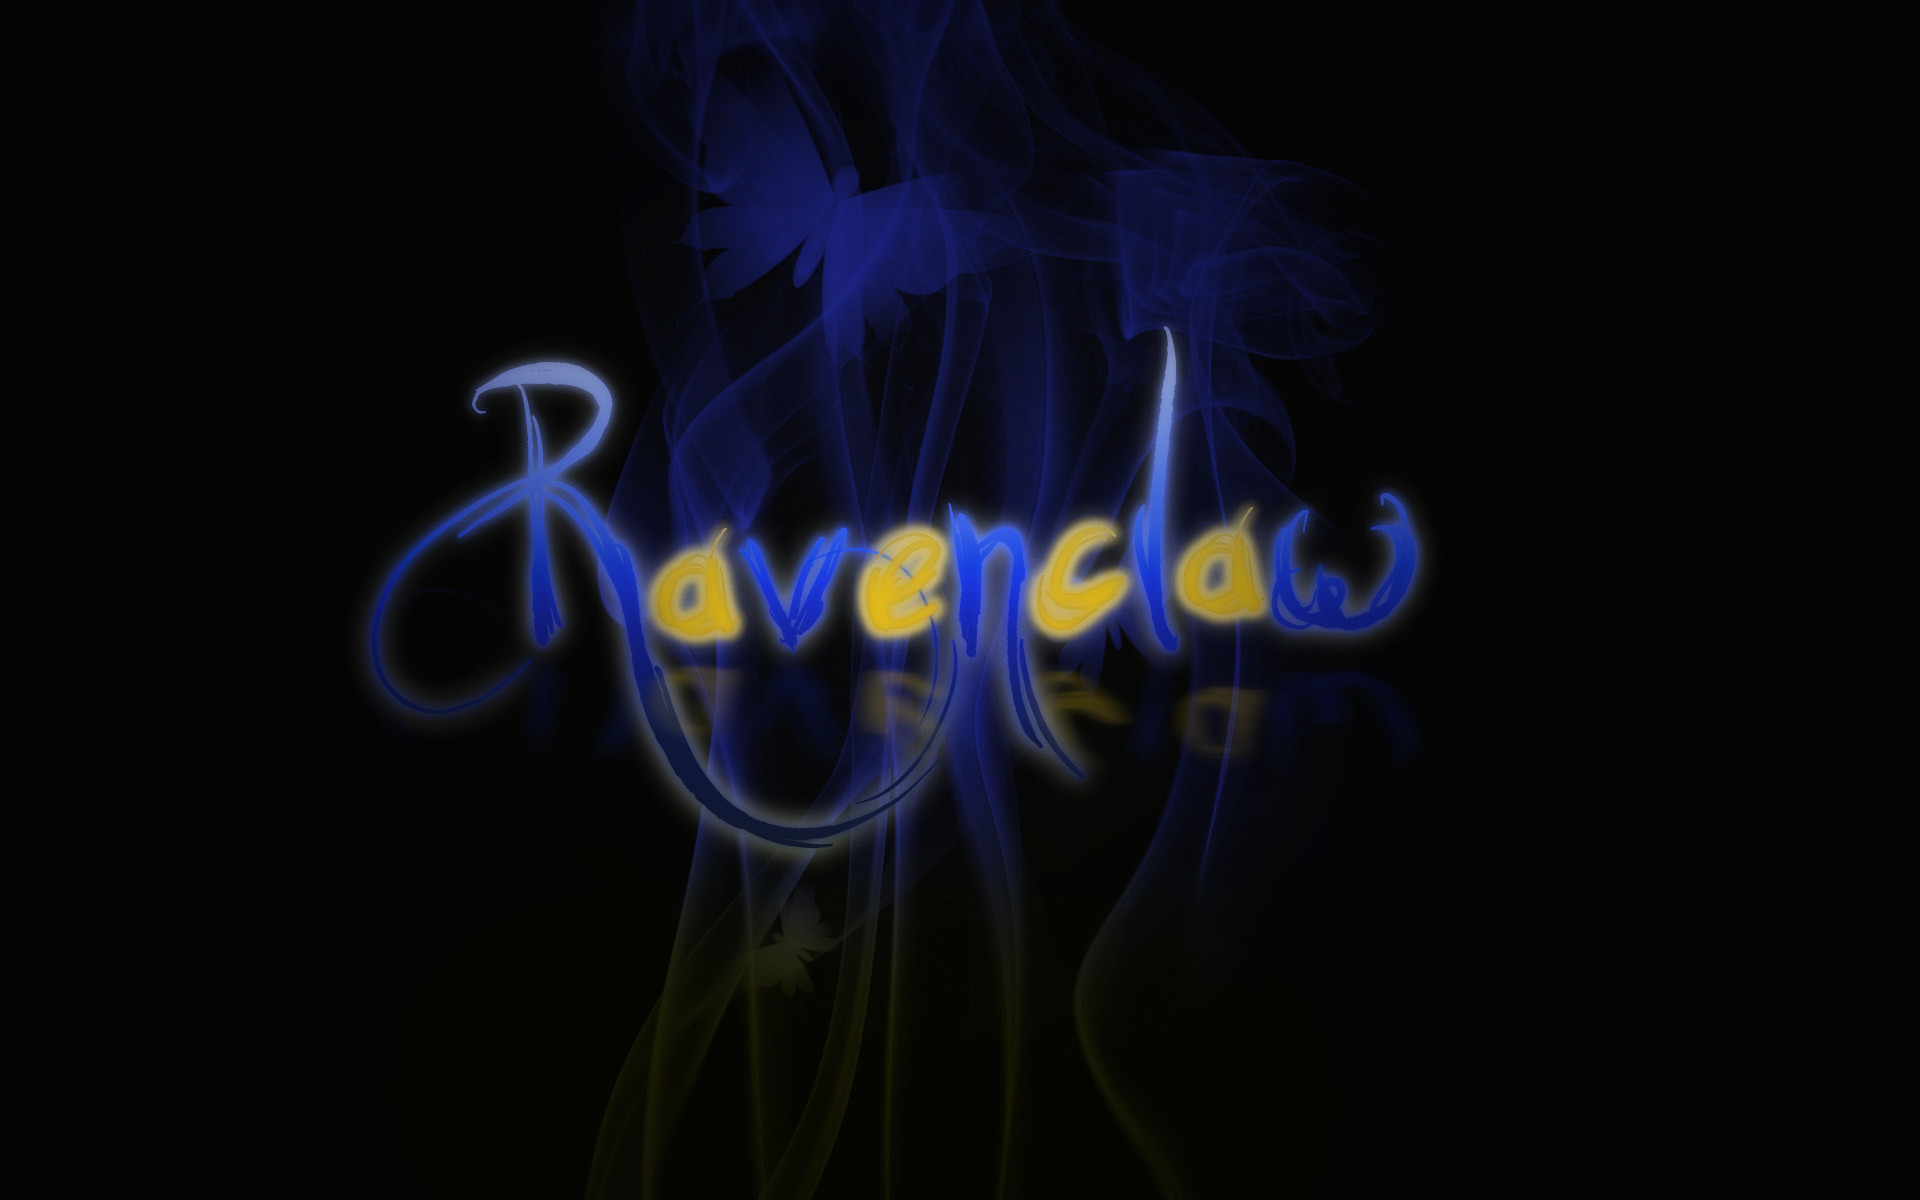 Harry Potter Iphone Wallpaper Ravenclaw Ravenclaw wallpaper by HTML .